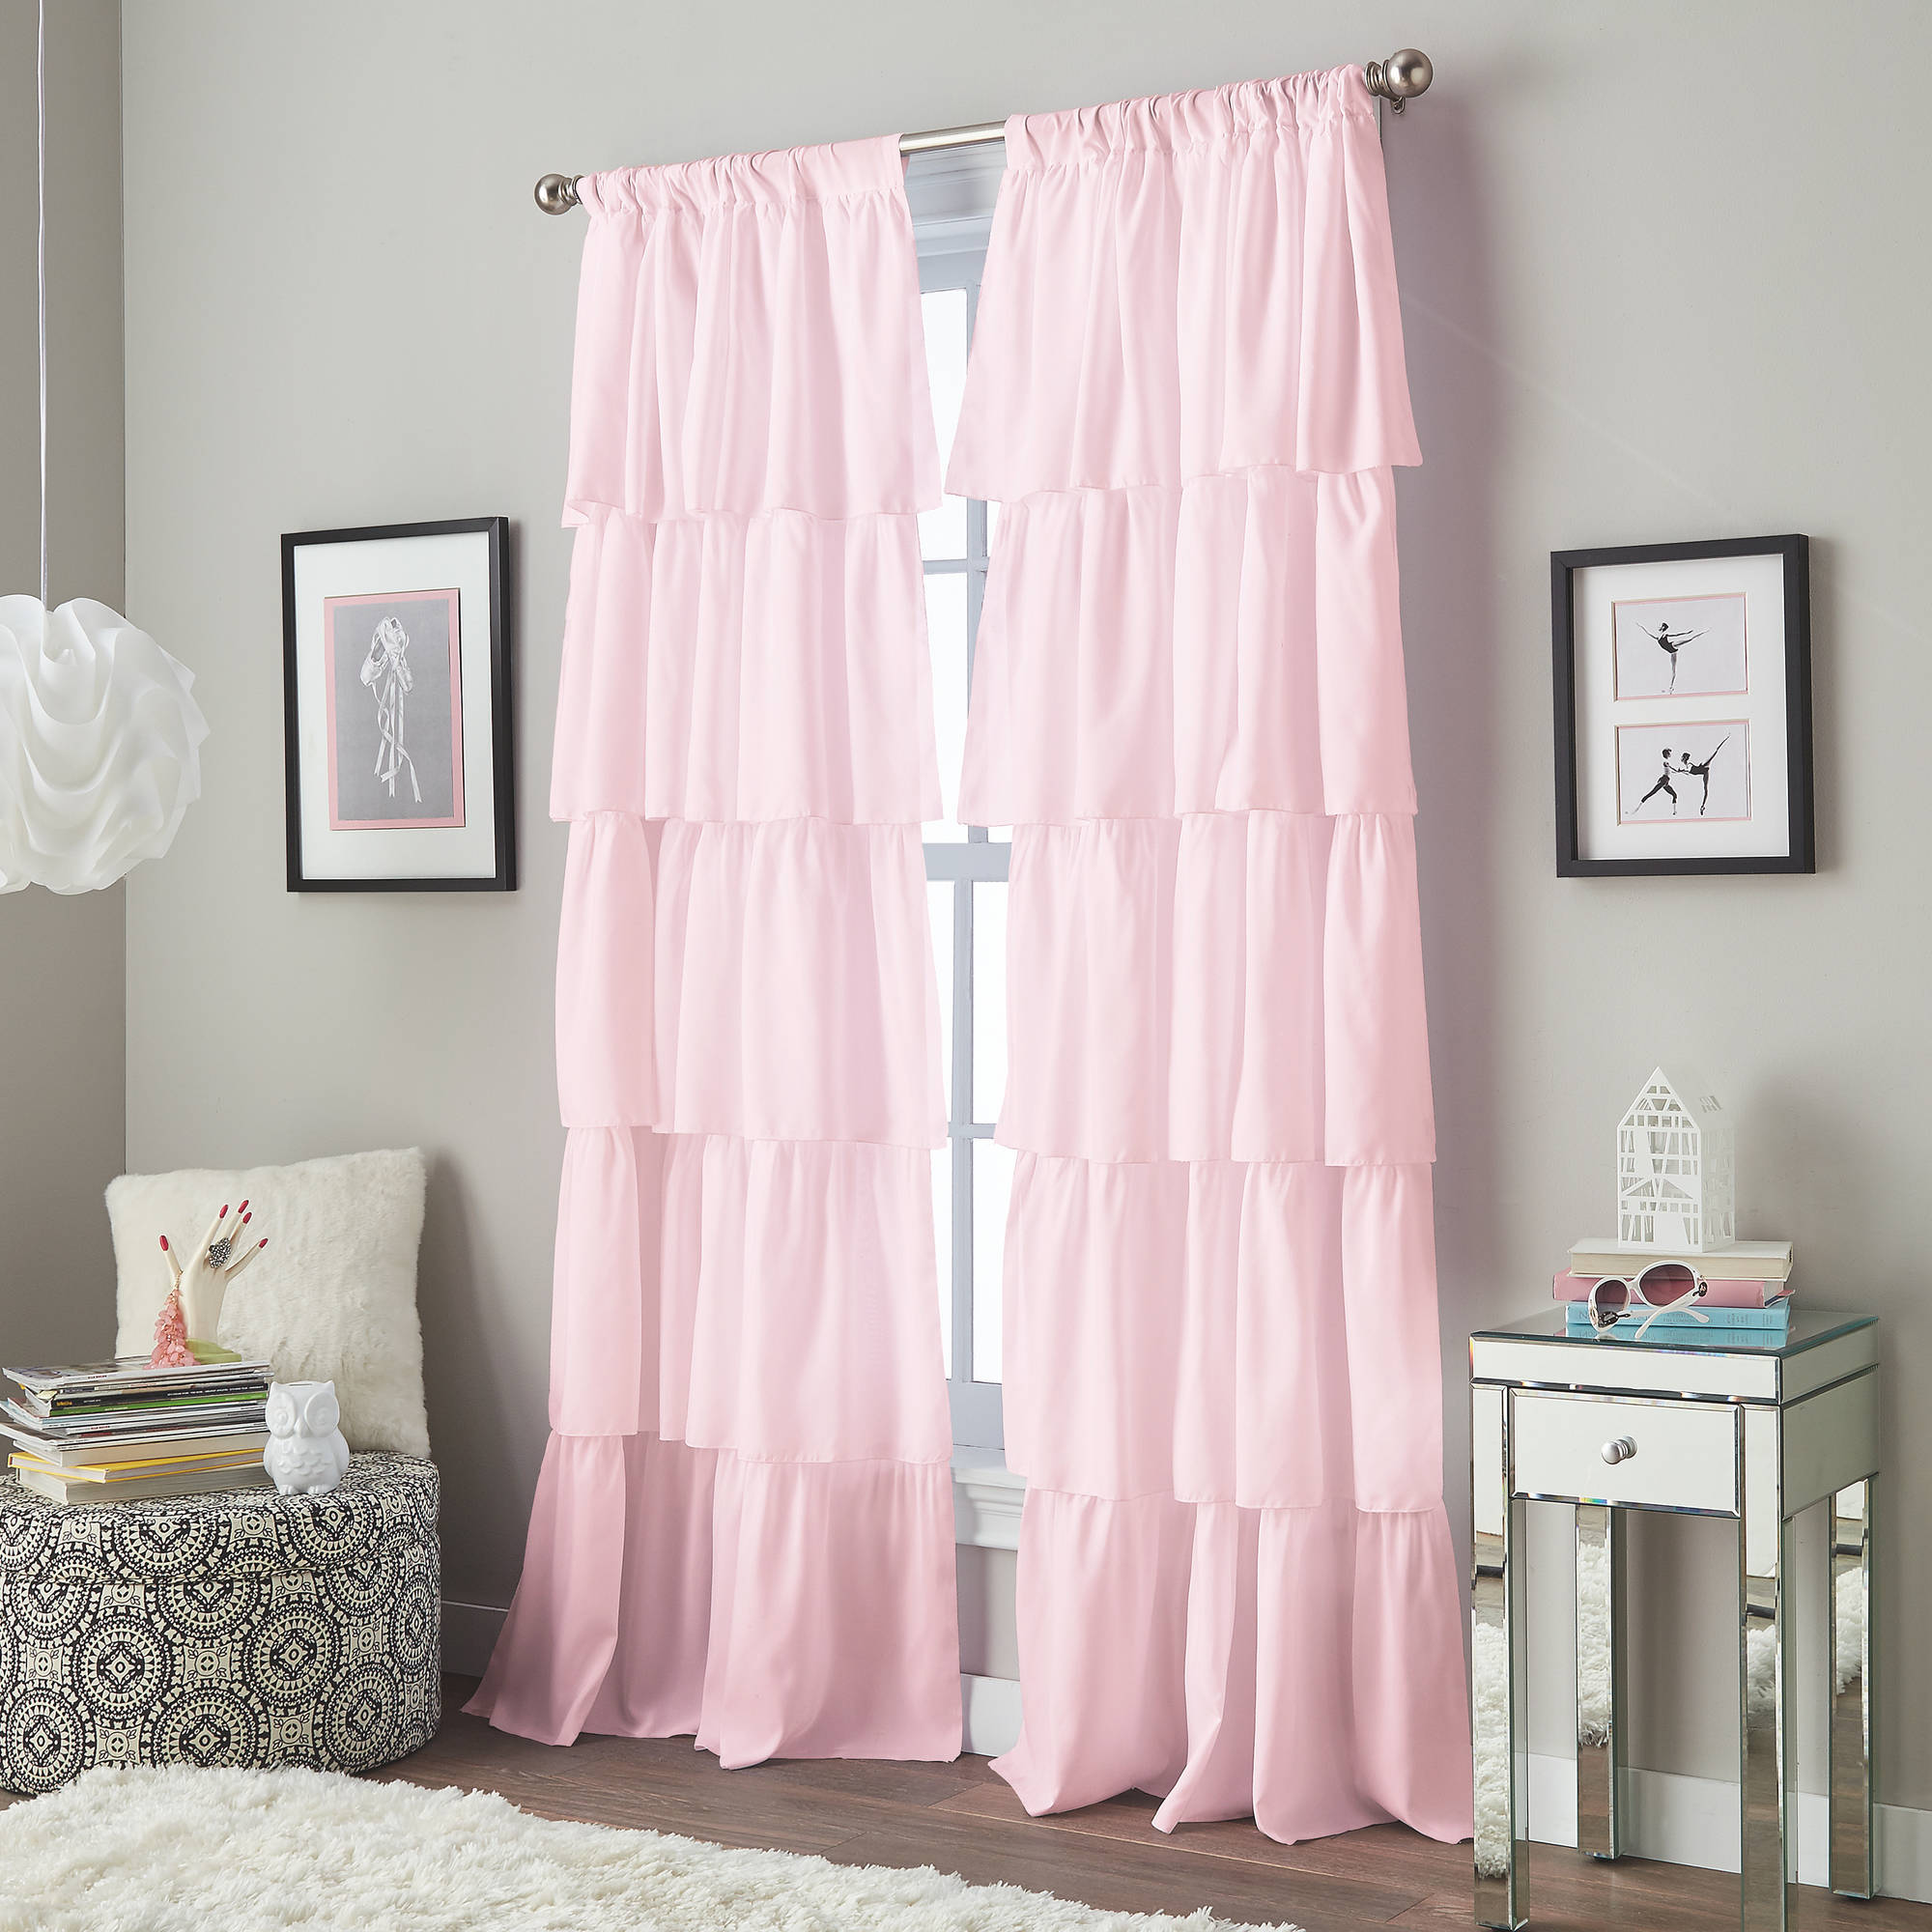 Flounce Tiered Girls Bedroom Curtain Panel